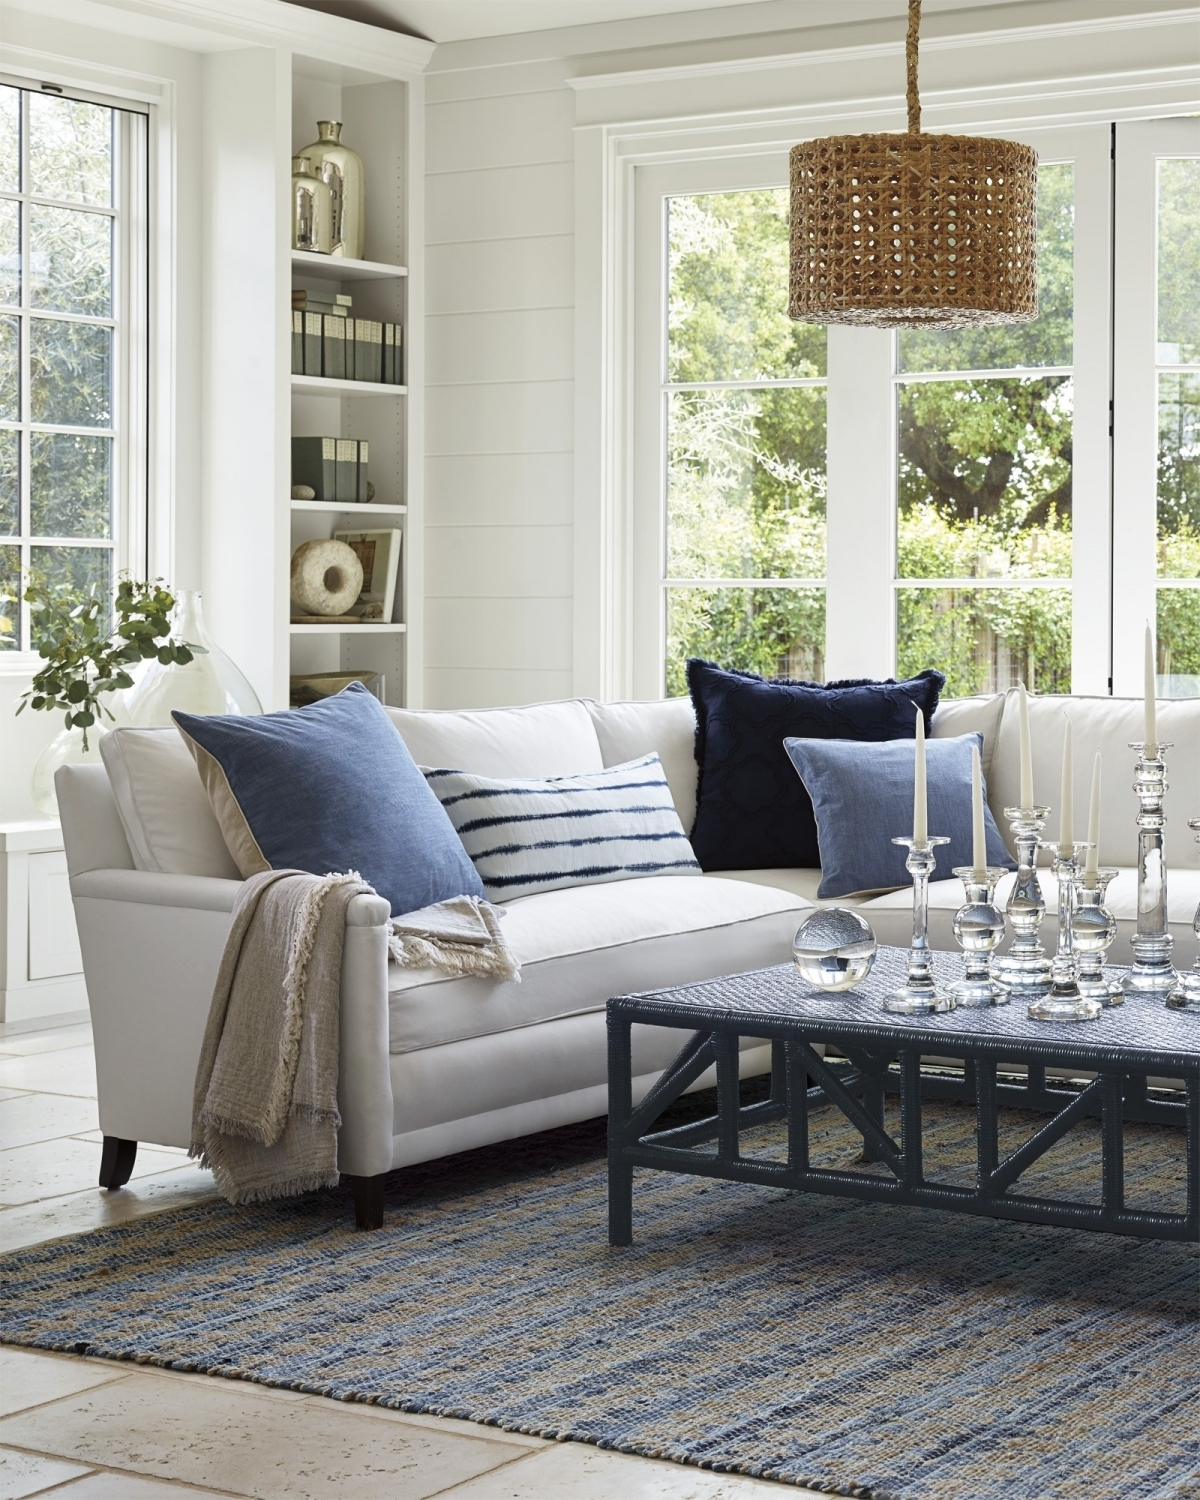 2017 Queens Ny Sectional Sofas Pertaining To 20 Fabulous Coffee Tables + How To Pair With The Right Sofa (View 1 of 15)